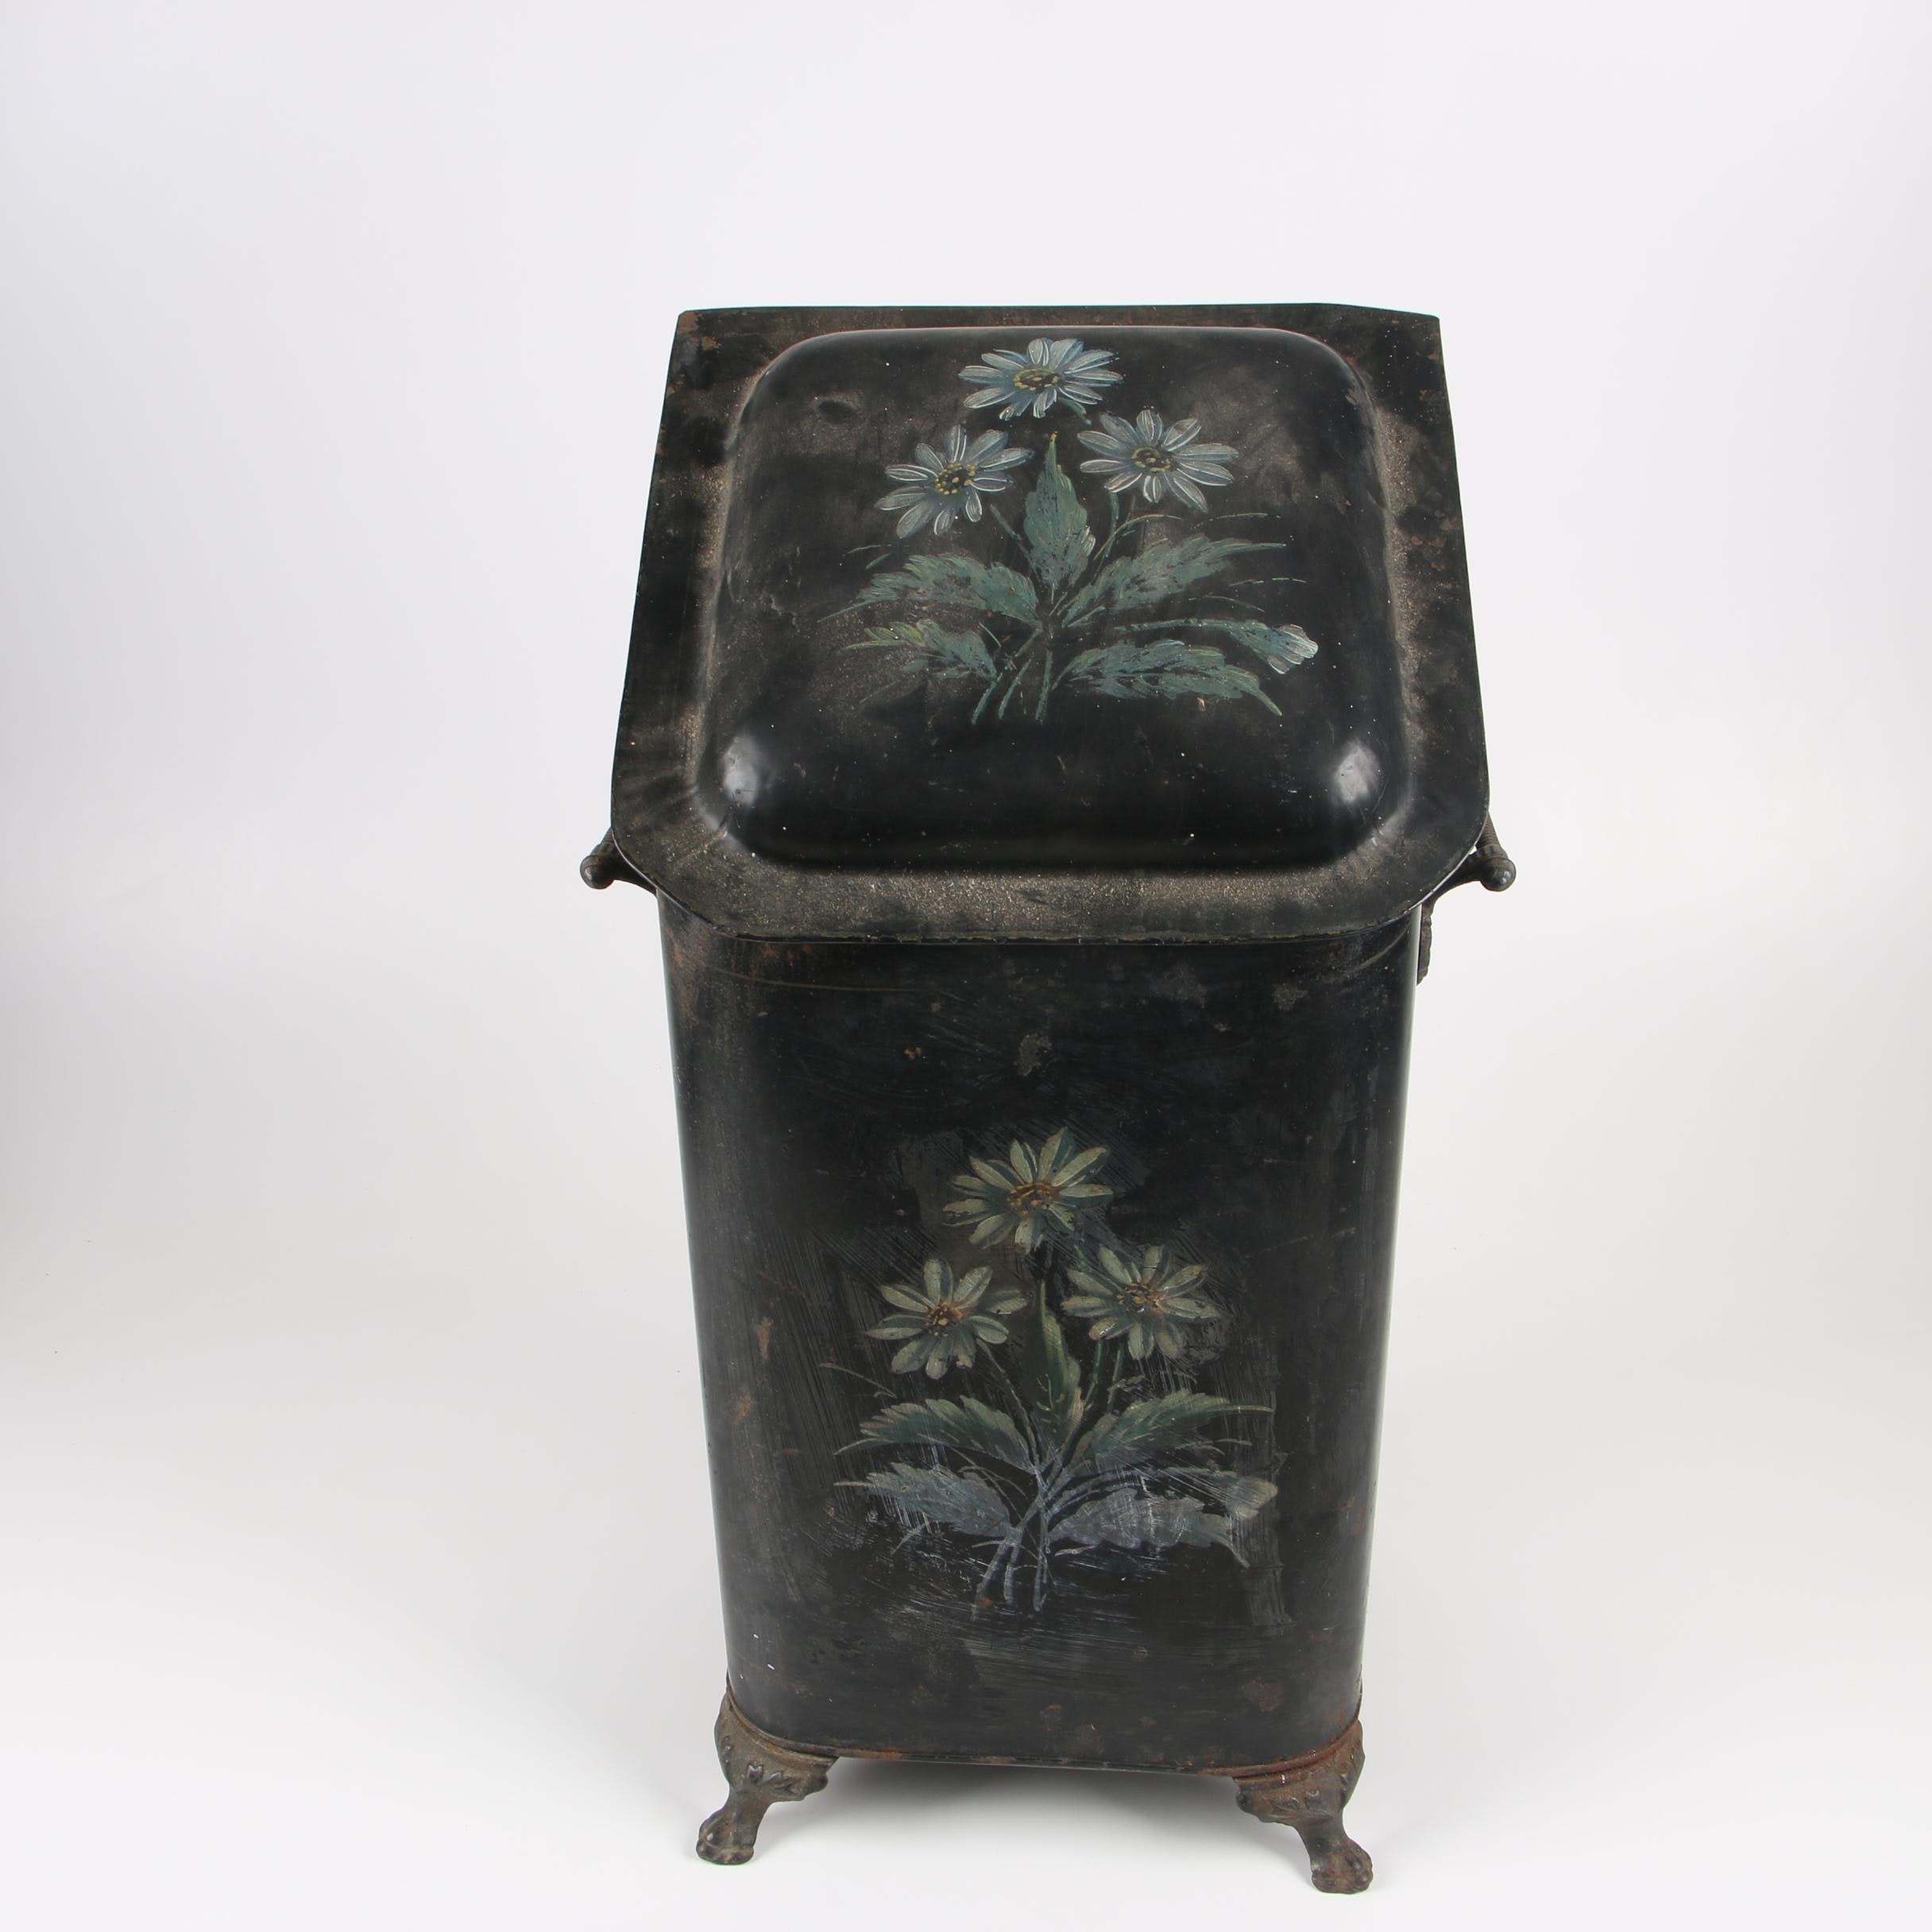 Tole Coal Scuttle, Late 19th/Early 20th Century